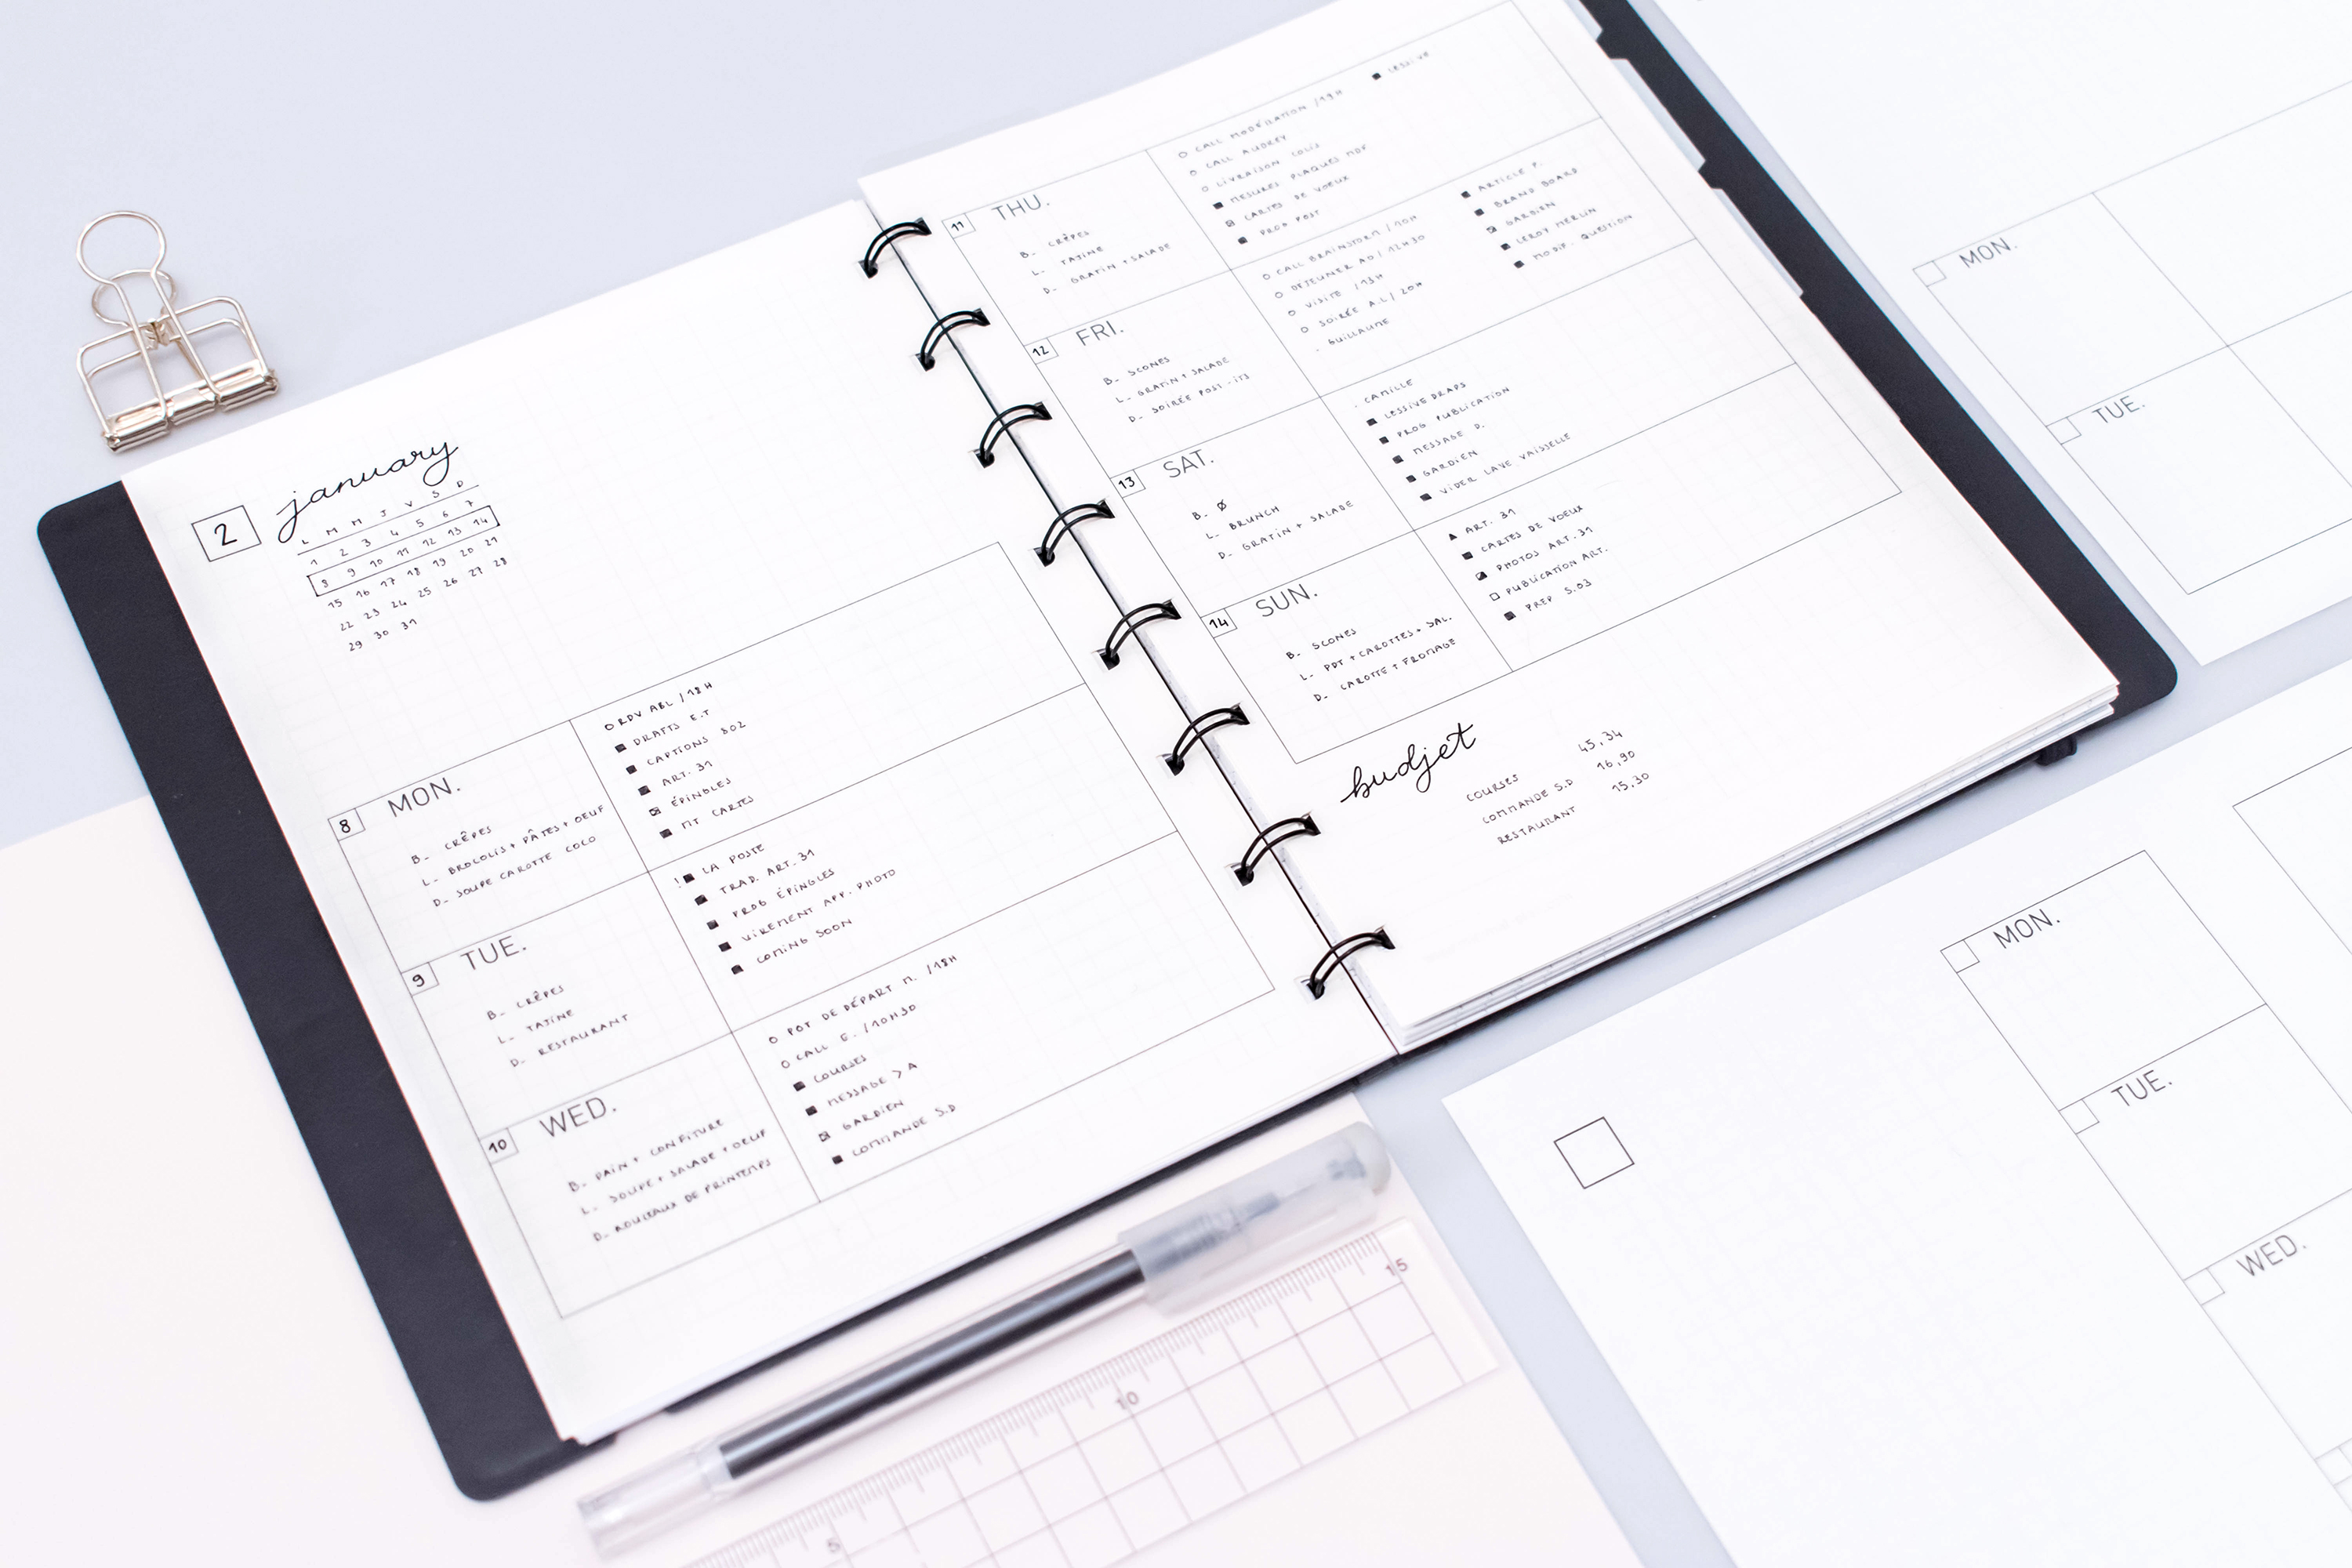 image about Printable Planners called Weekly planner: 2018 free of charge printables - Minimum amount.Software